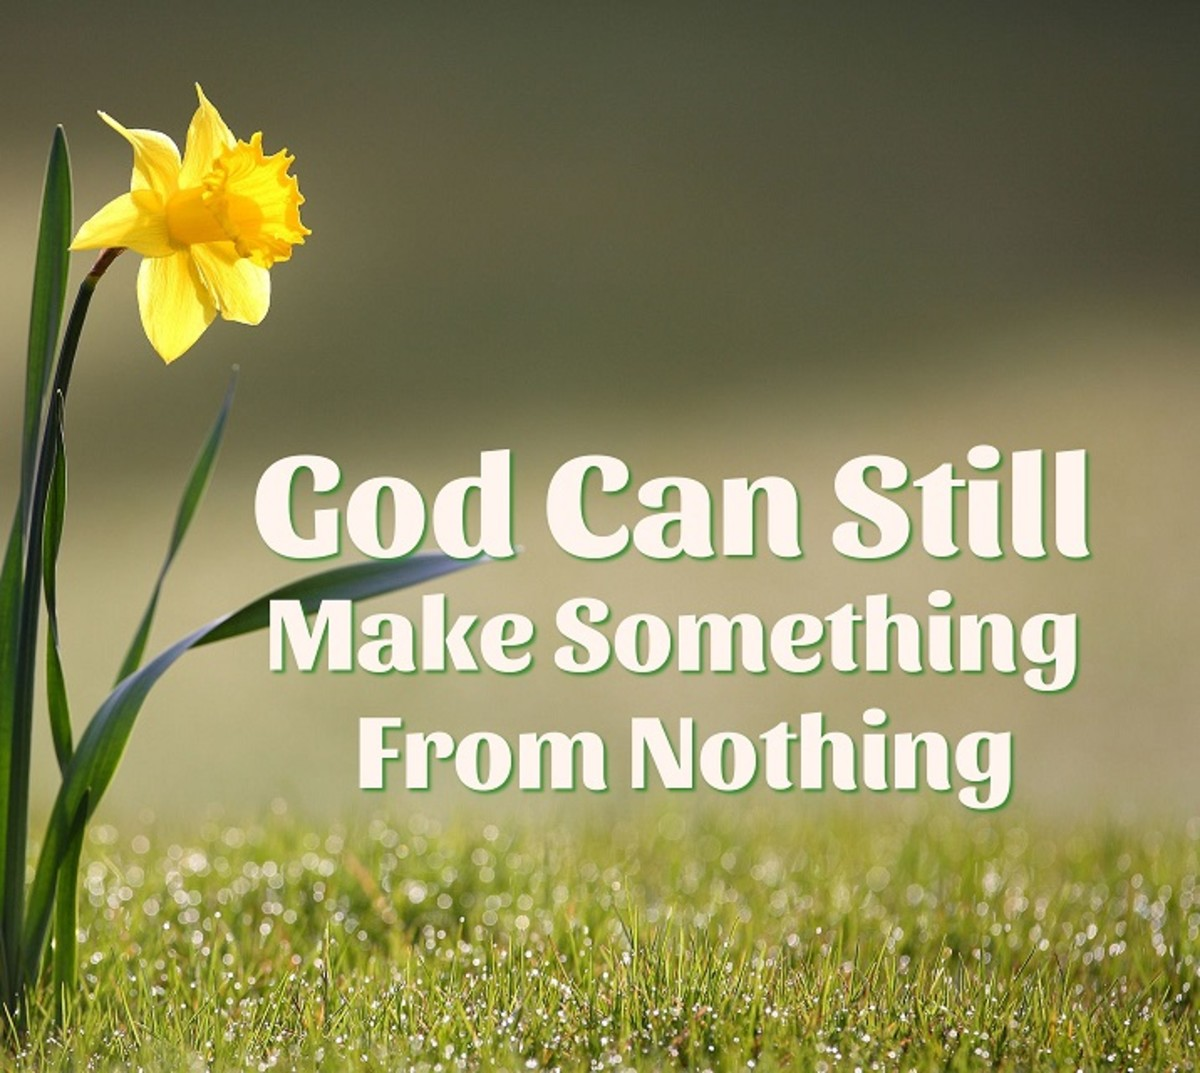 God can still make something from nothing.